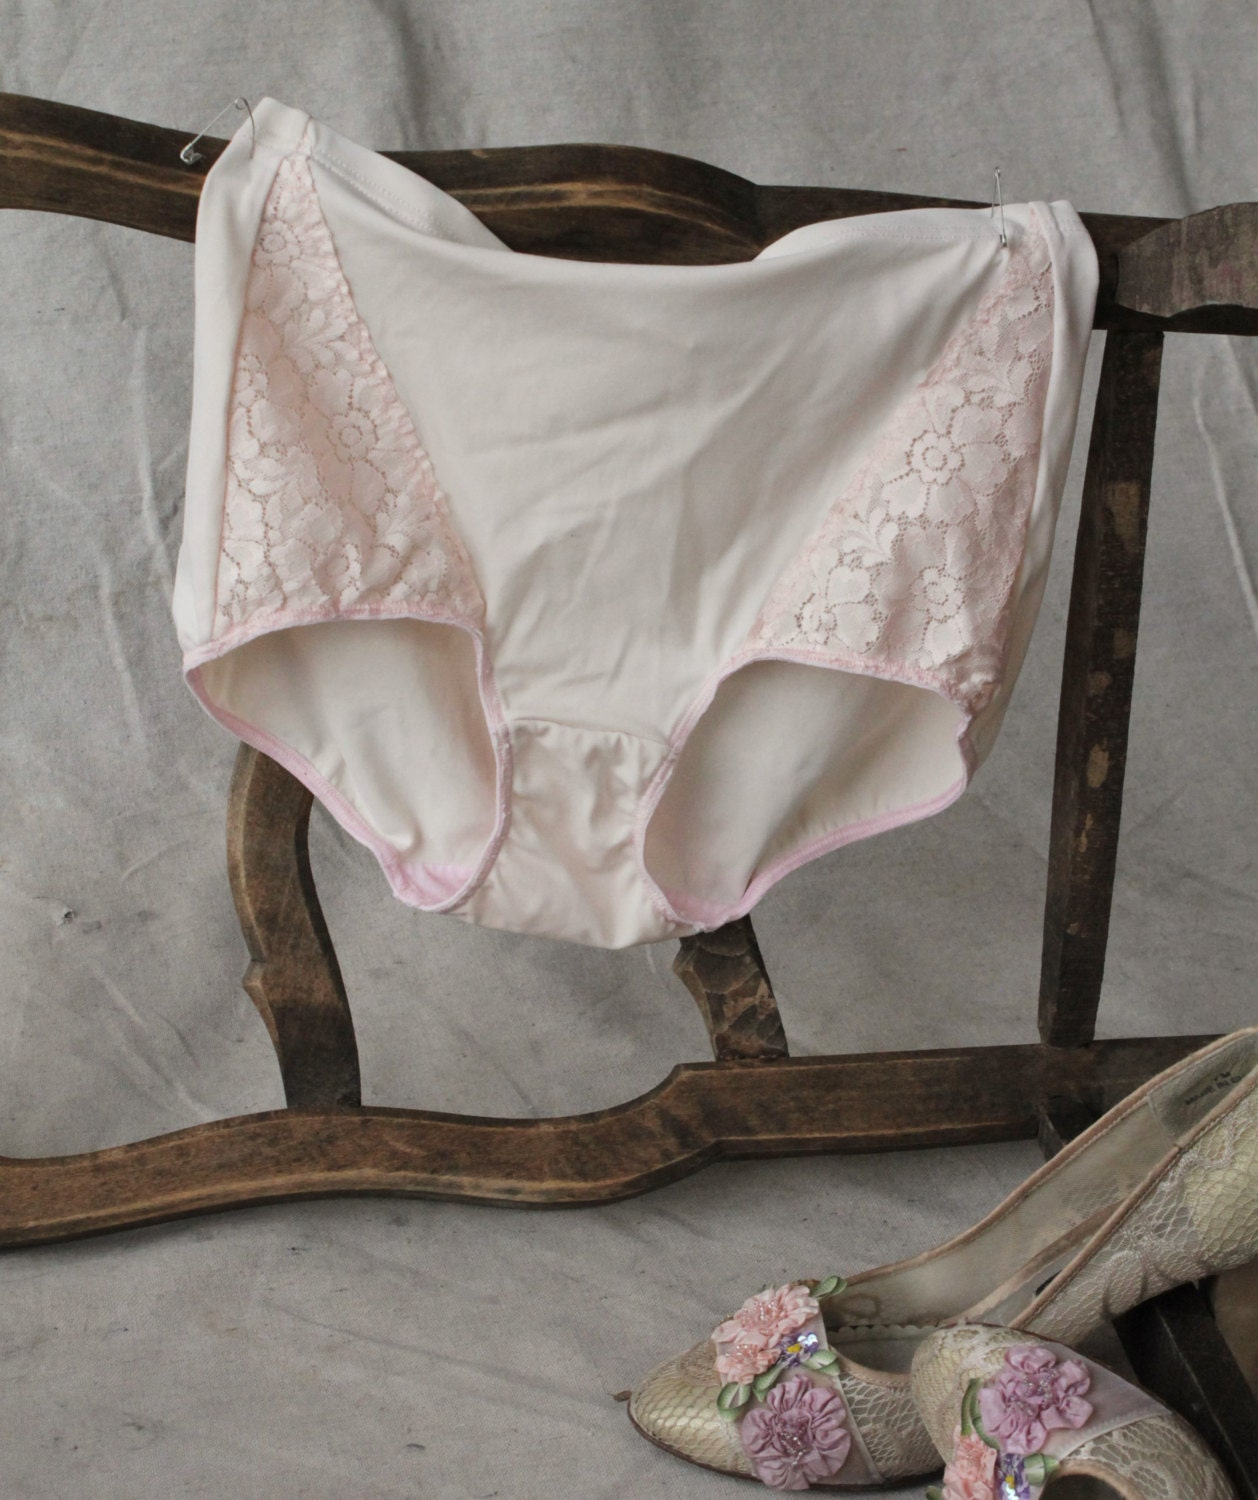 Vintage Blush Pink High Waist Girdle Panty By By MovieStarMoon